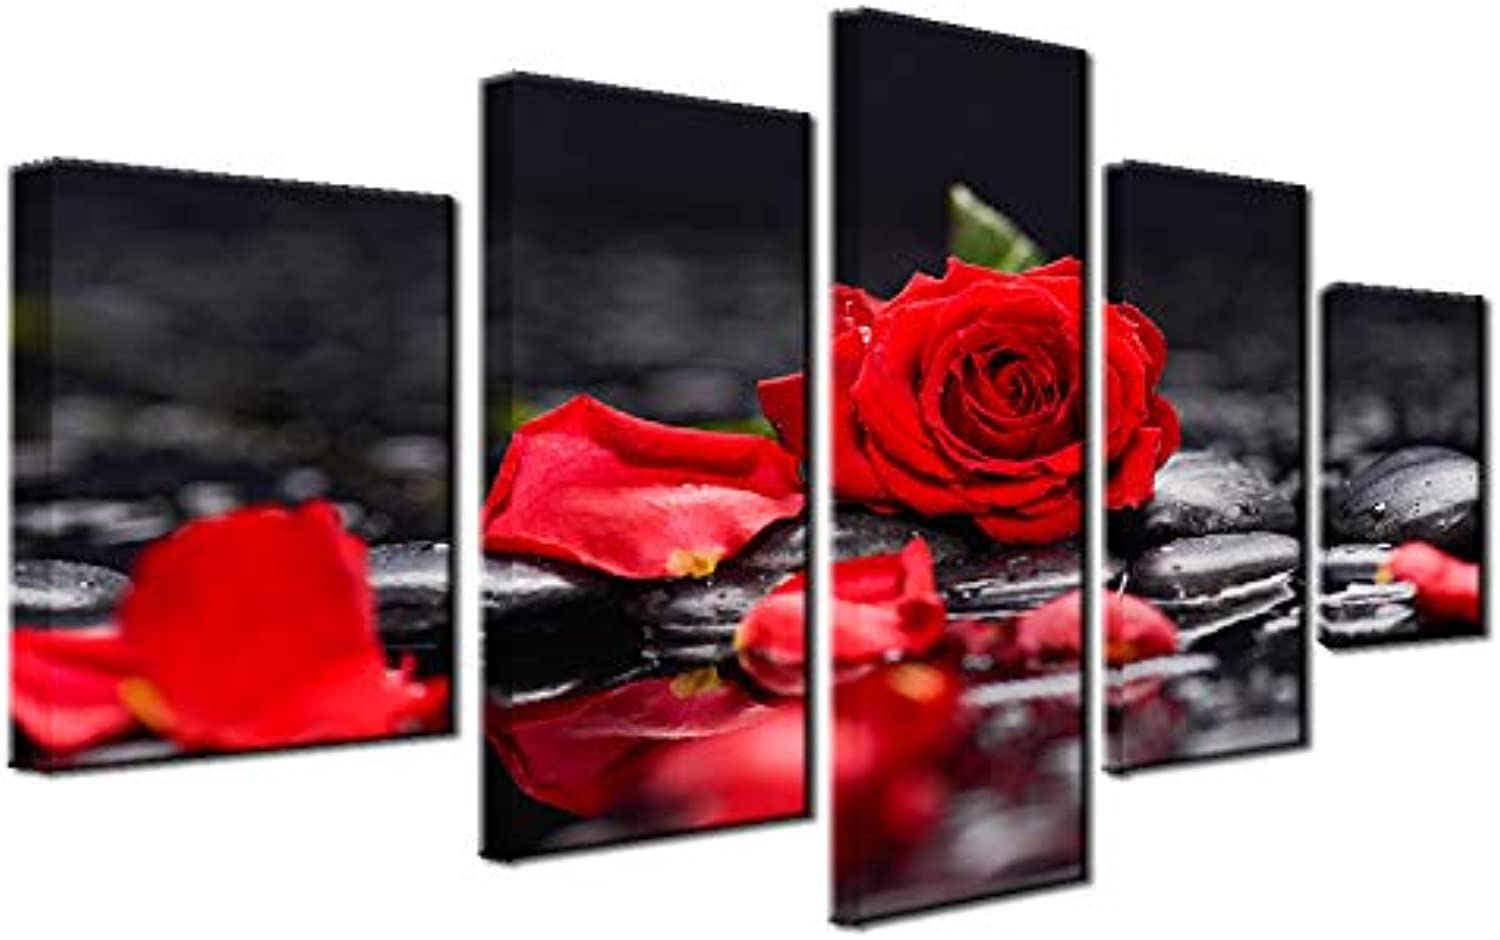 Hierarchy Art Red pink 5 Panels Painting Wall Art Modern Giclee Prints Decor Floral Artwork on Black Canvas for Living Room